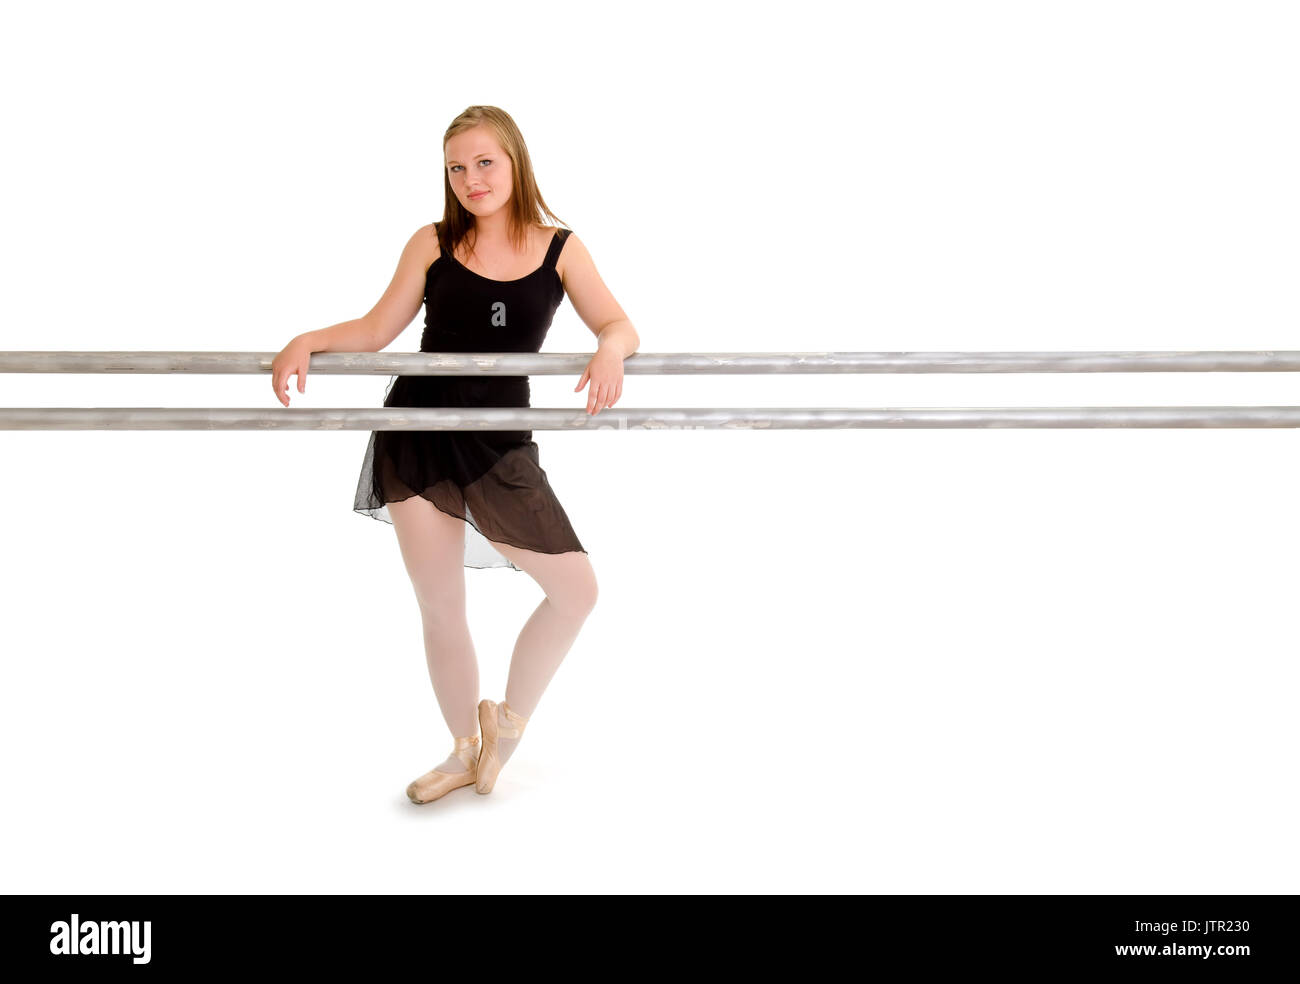 Teenage Ballerina Dancer at the Barre used for Ballet Class - Stock Image